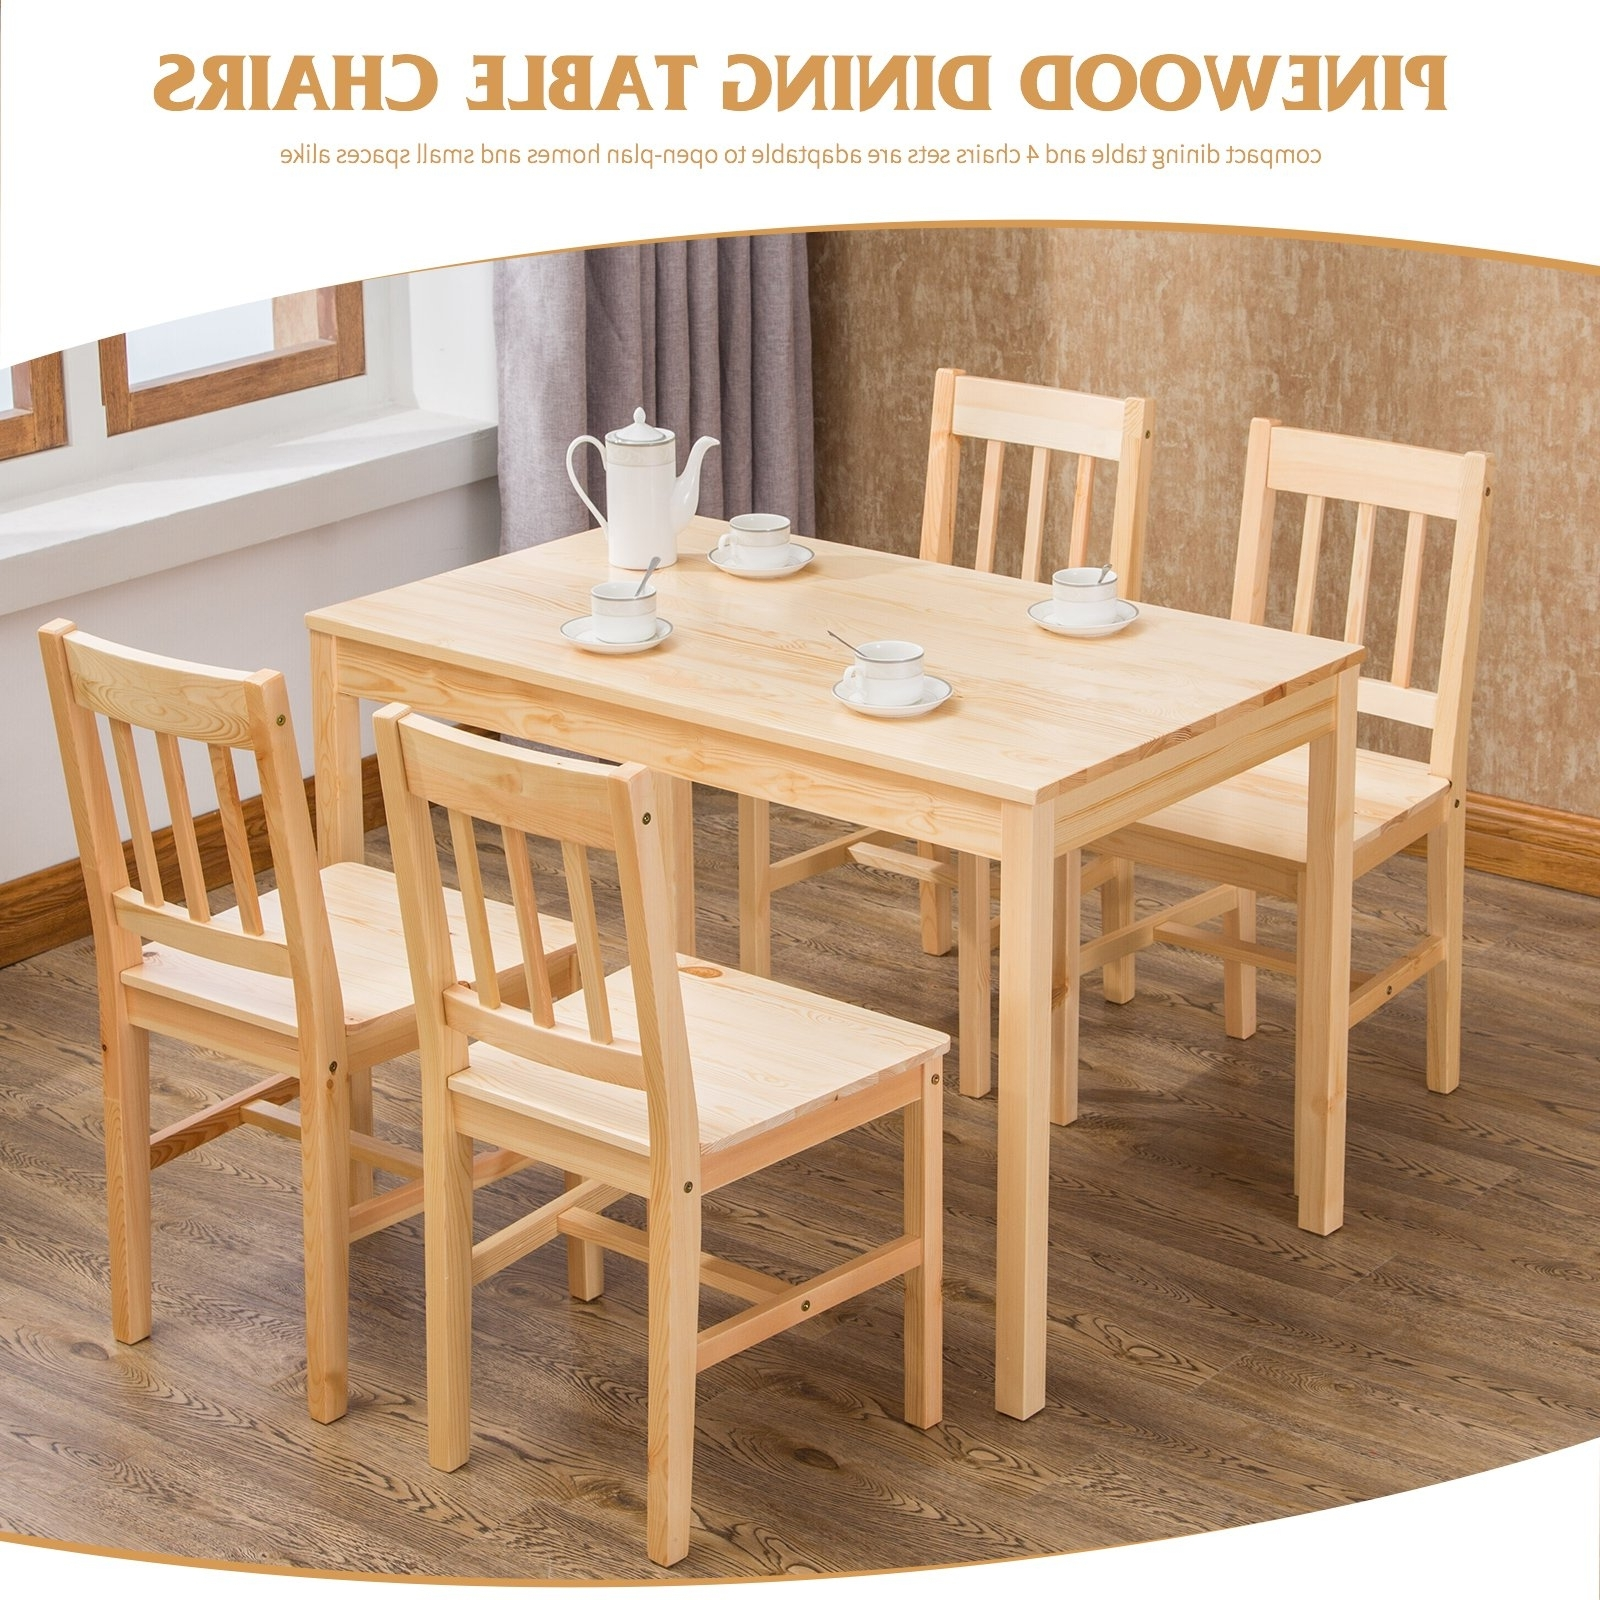 Small Dining Table And Chairs Set Solid Pine Wood Kitchen Furniture Regarding Most Recent Compact Dining Tables And Chairs (View 22 of 25)